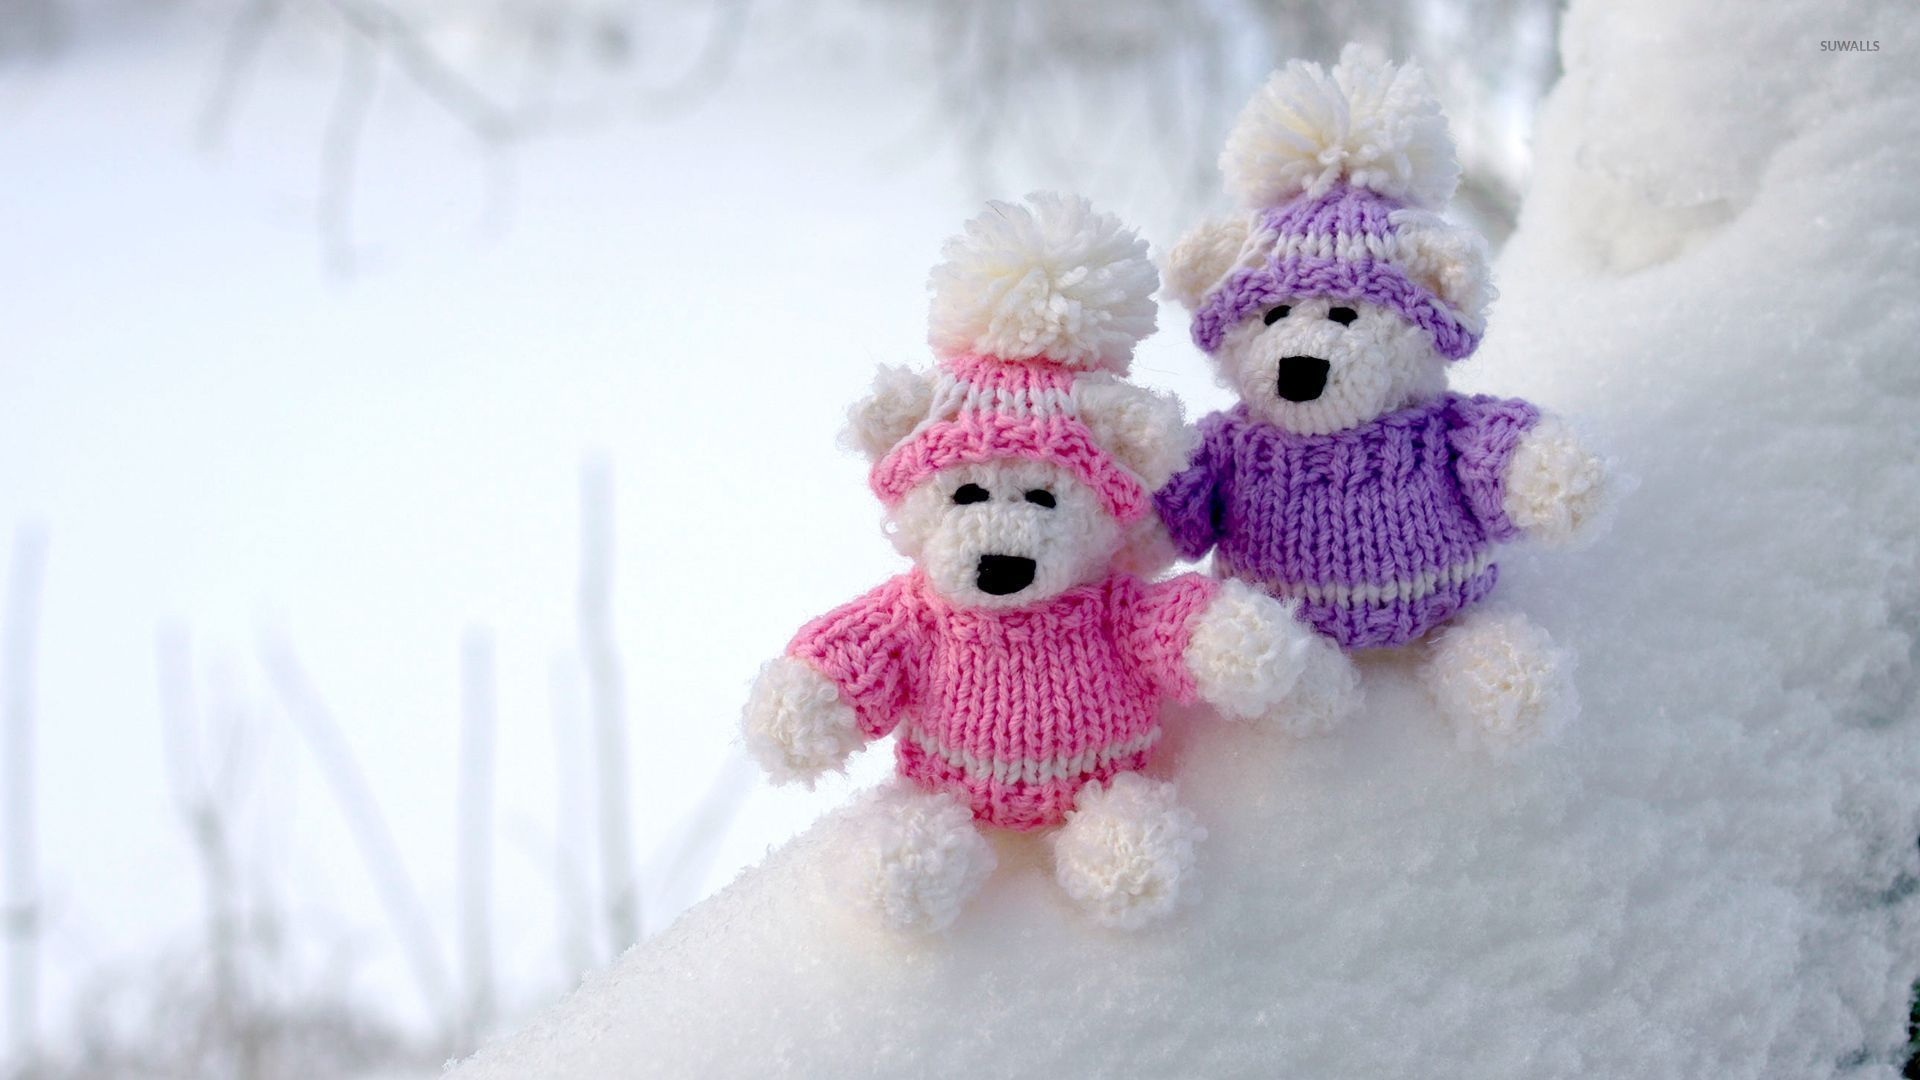 Teddy Bear Couple On Snowy Ground Wallpaper